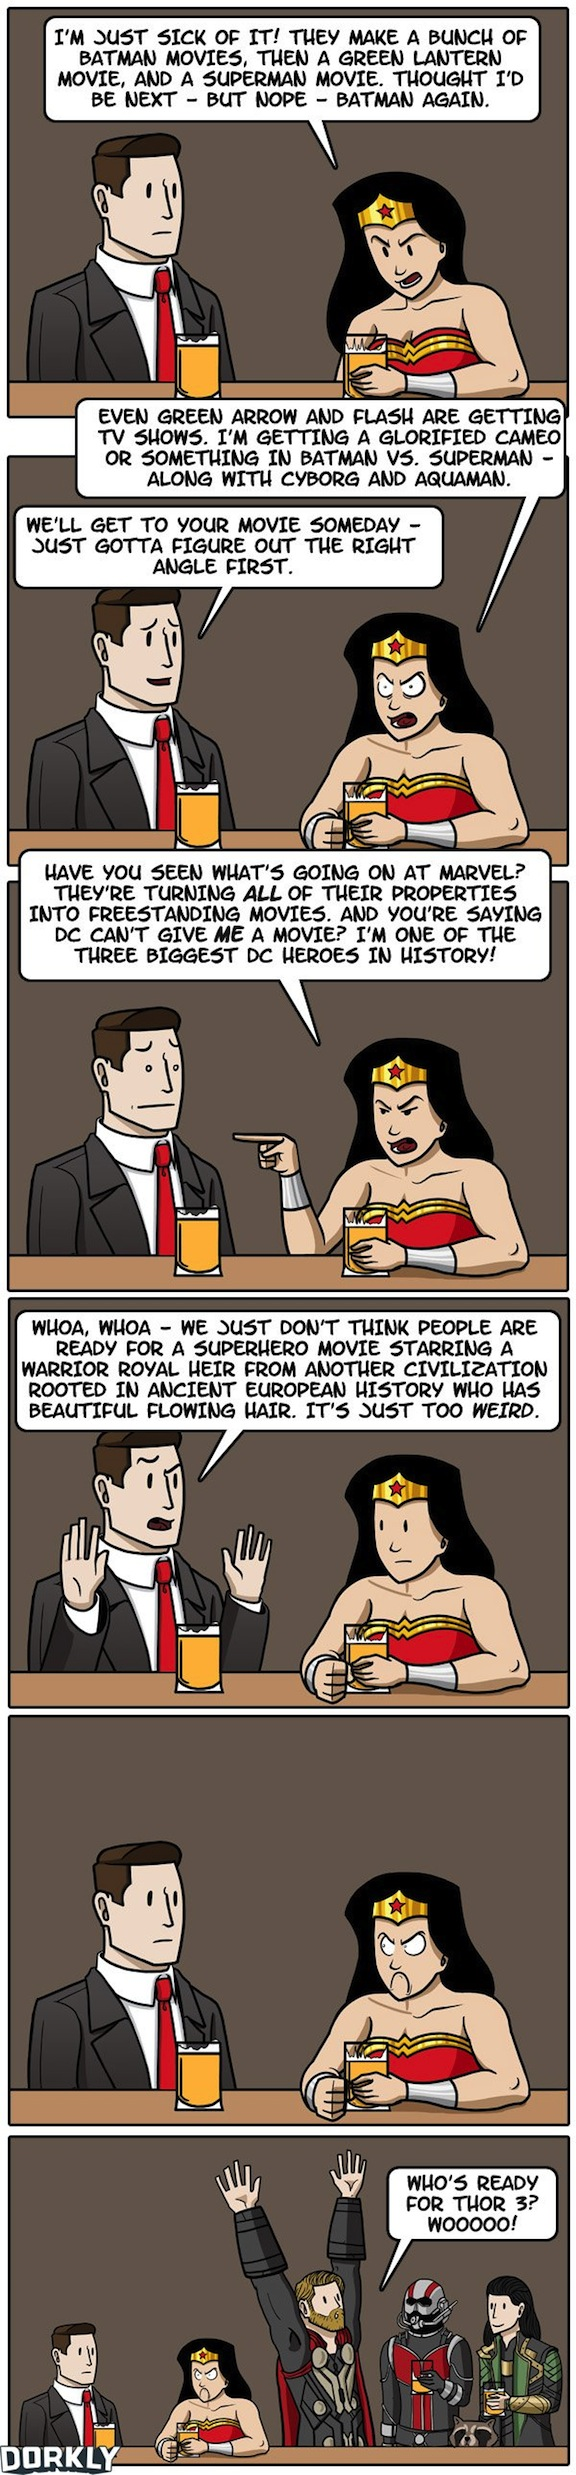 The Trouble with Wonder Woman